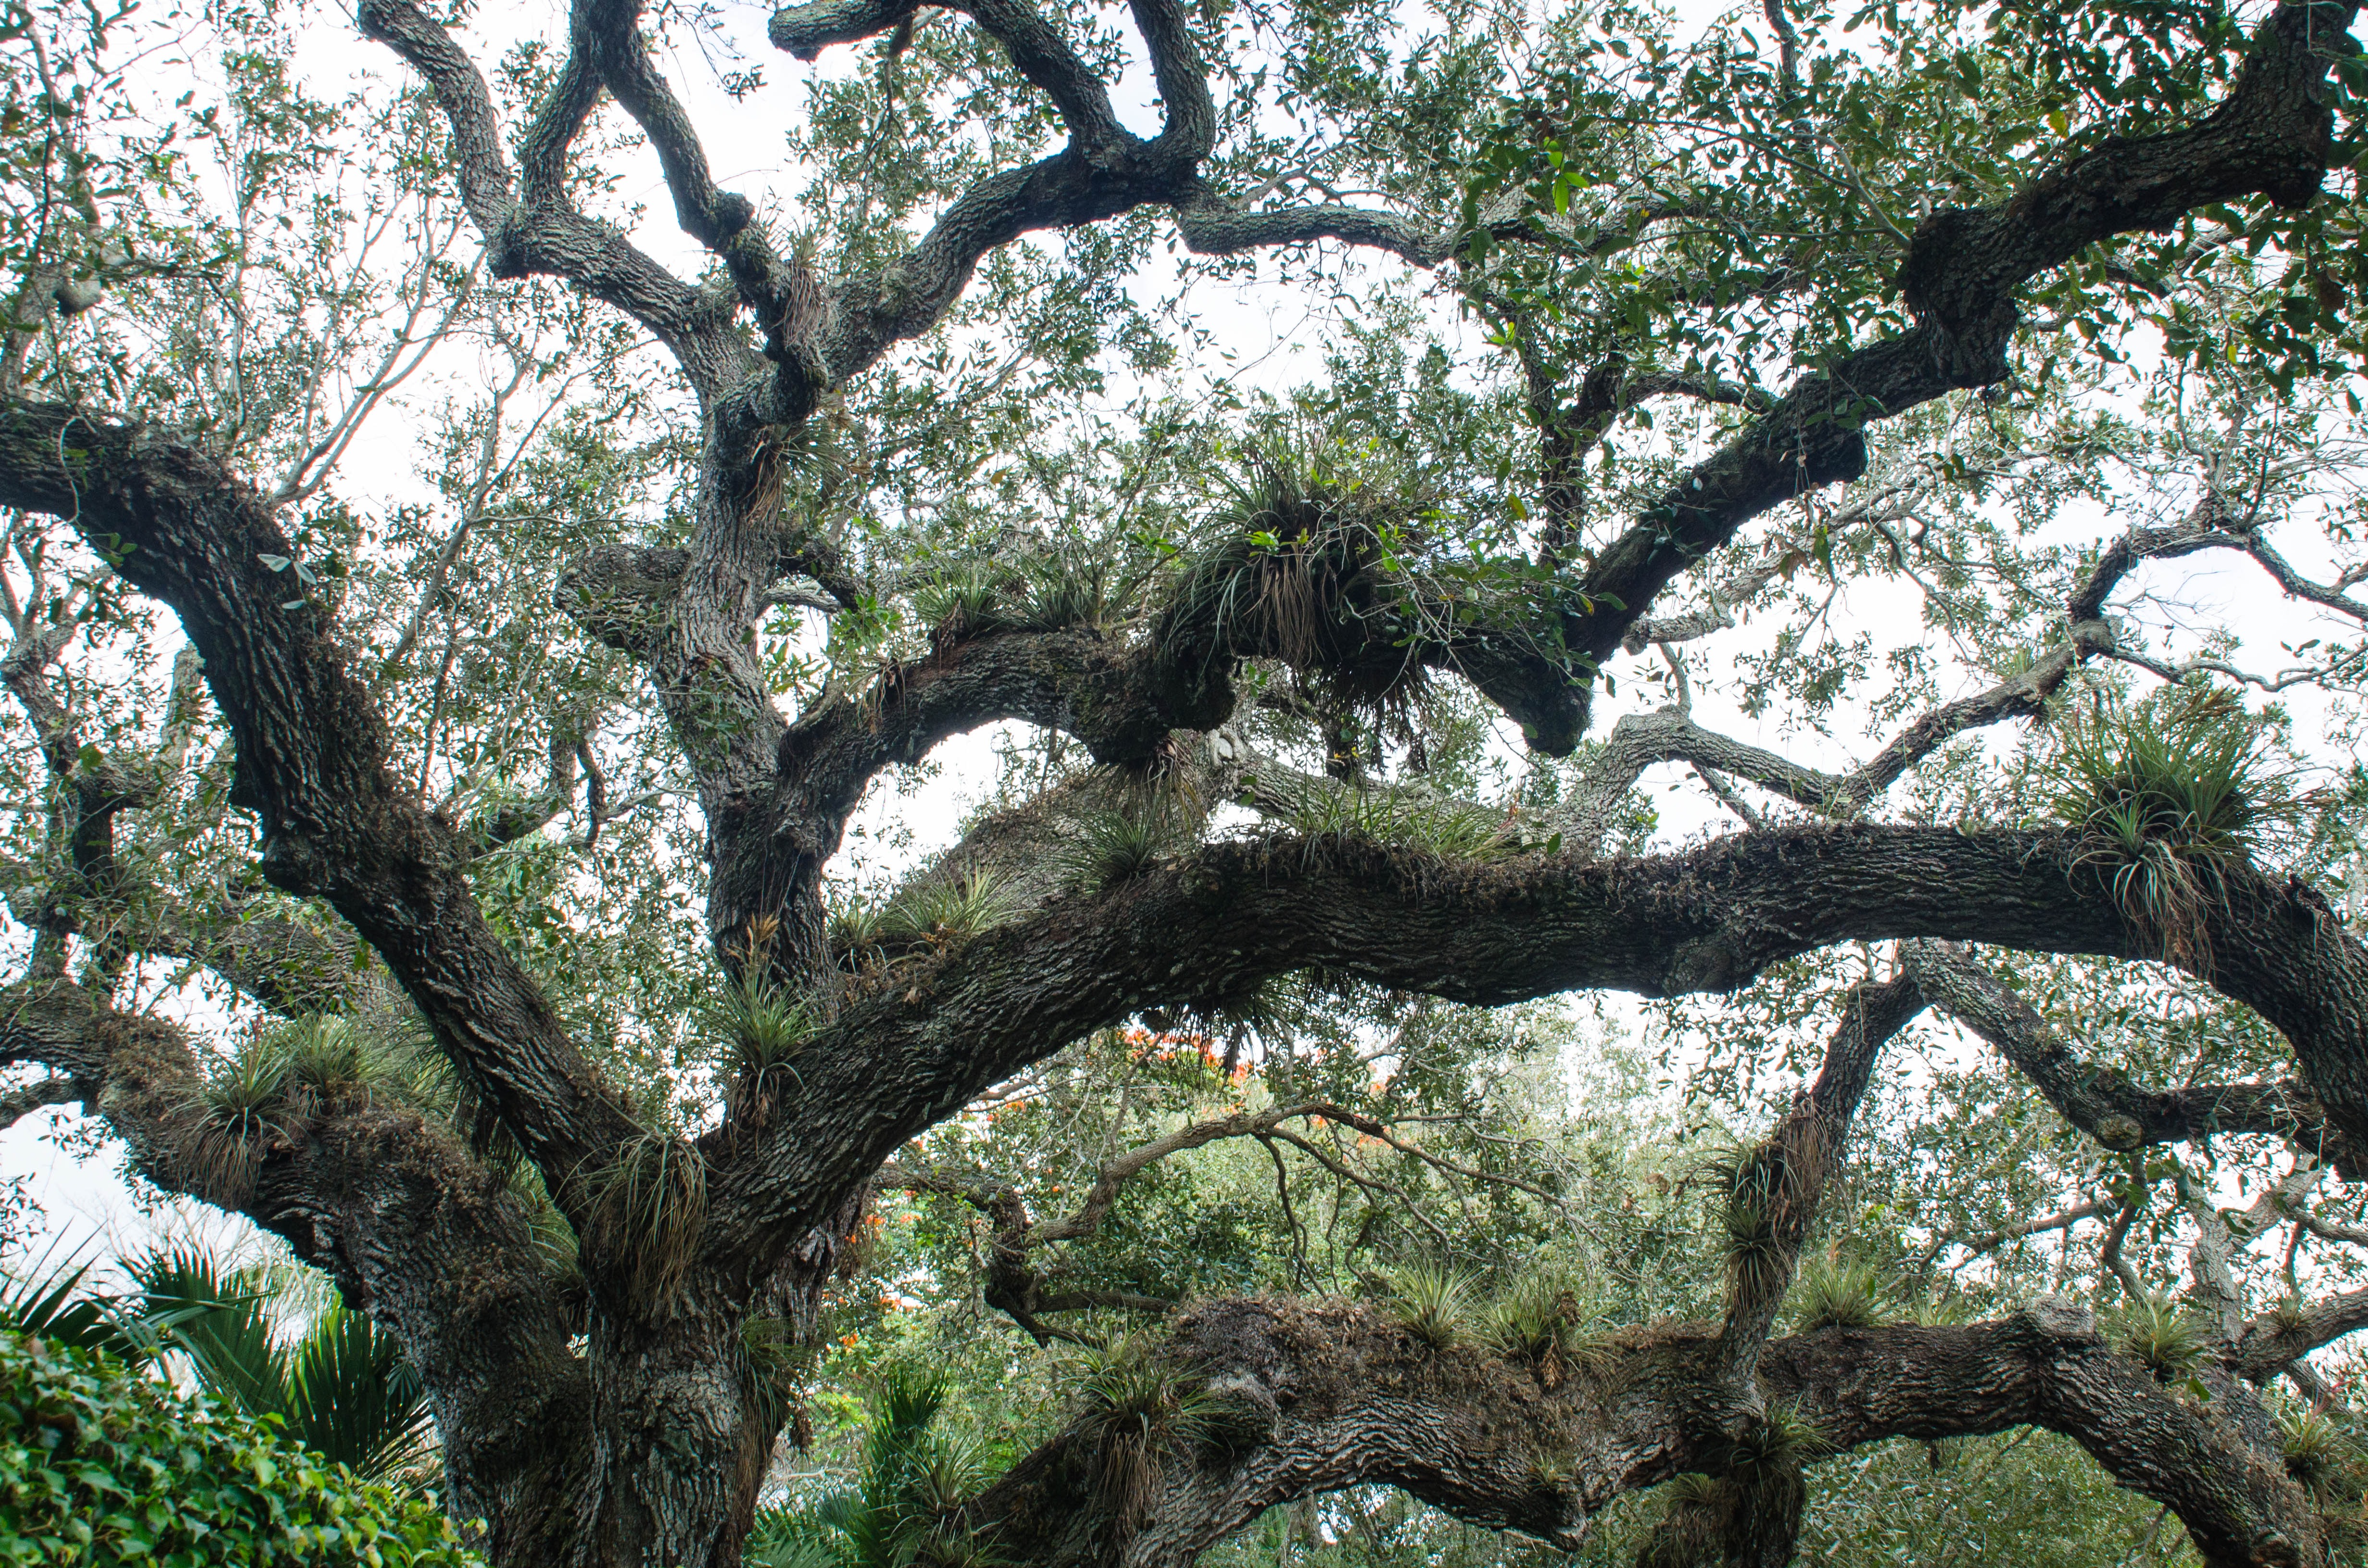 Looking up into old Live Oak in Florida